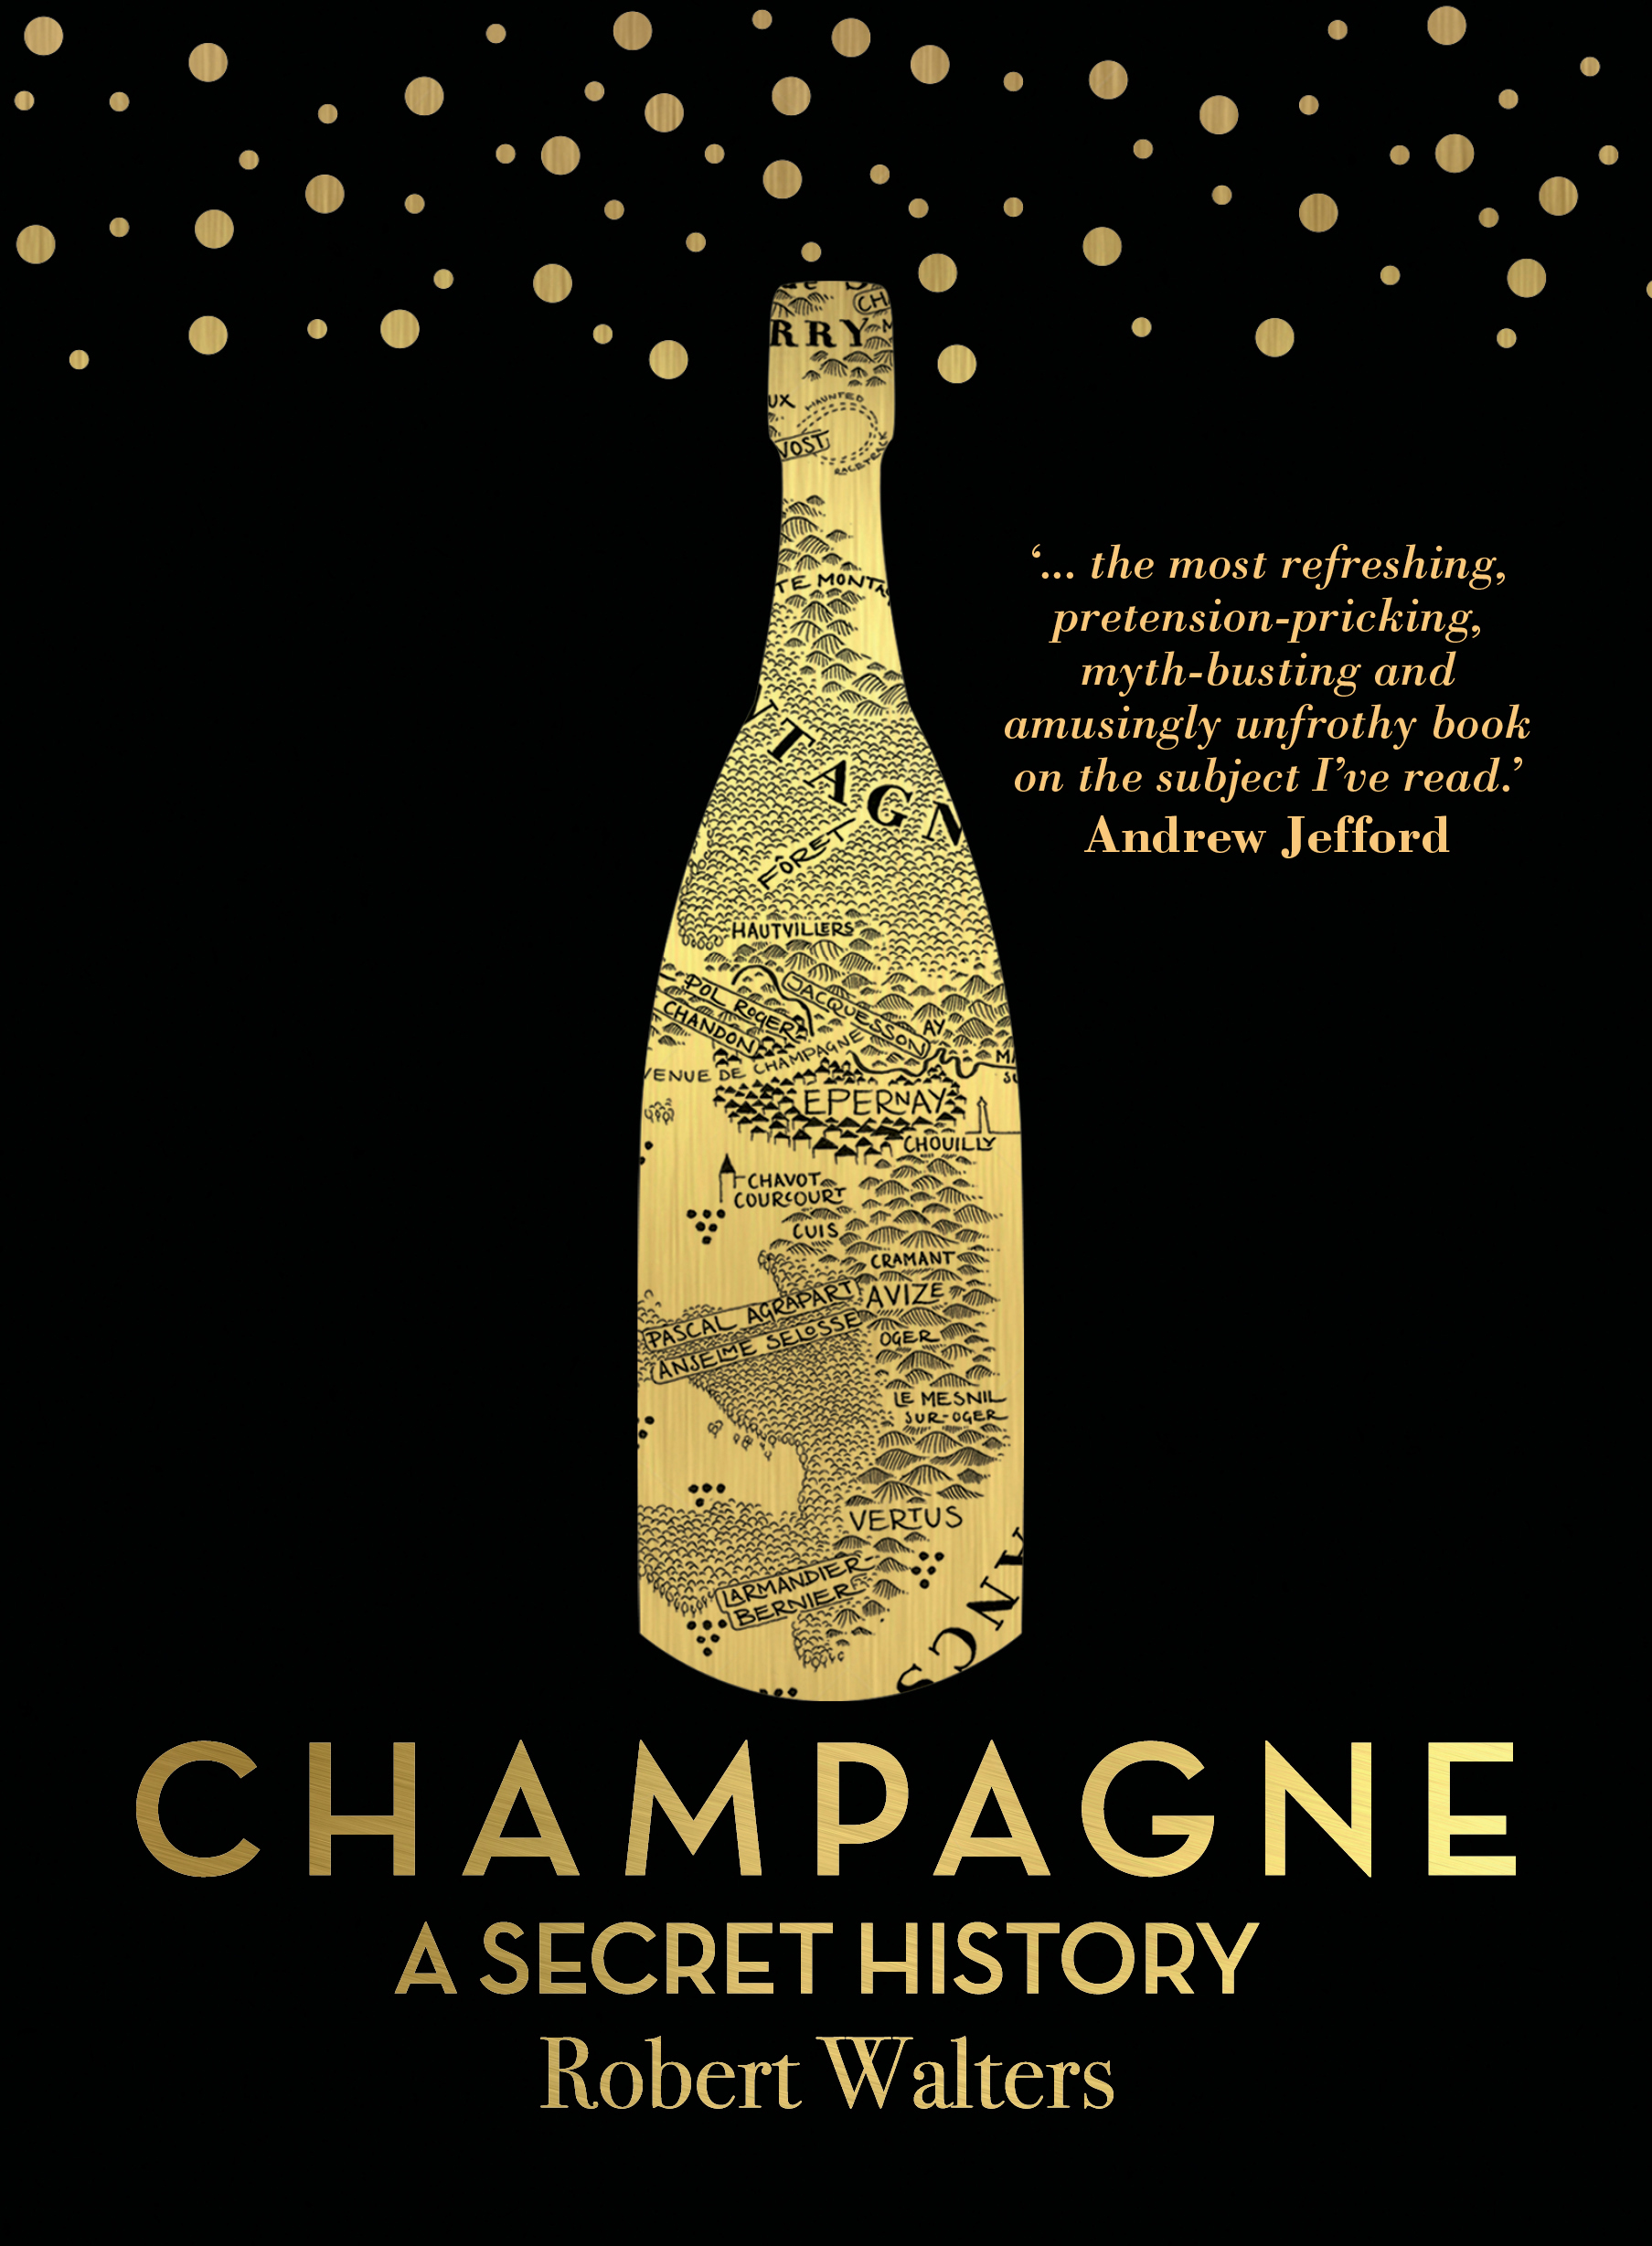 Champagne by Robert Walters, ISBN: 9781760630690